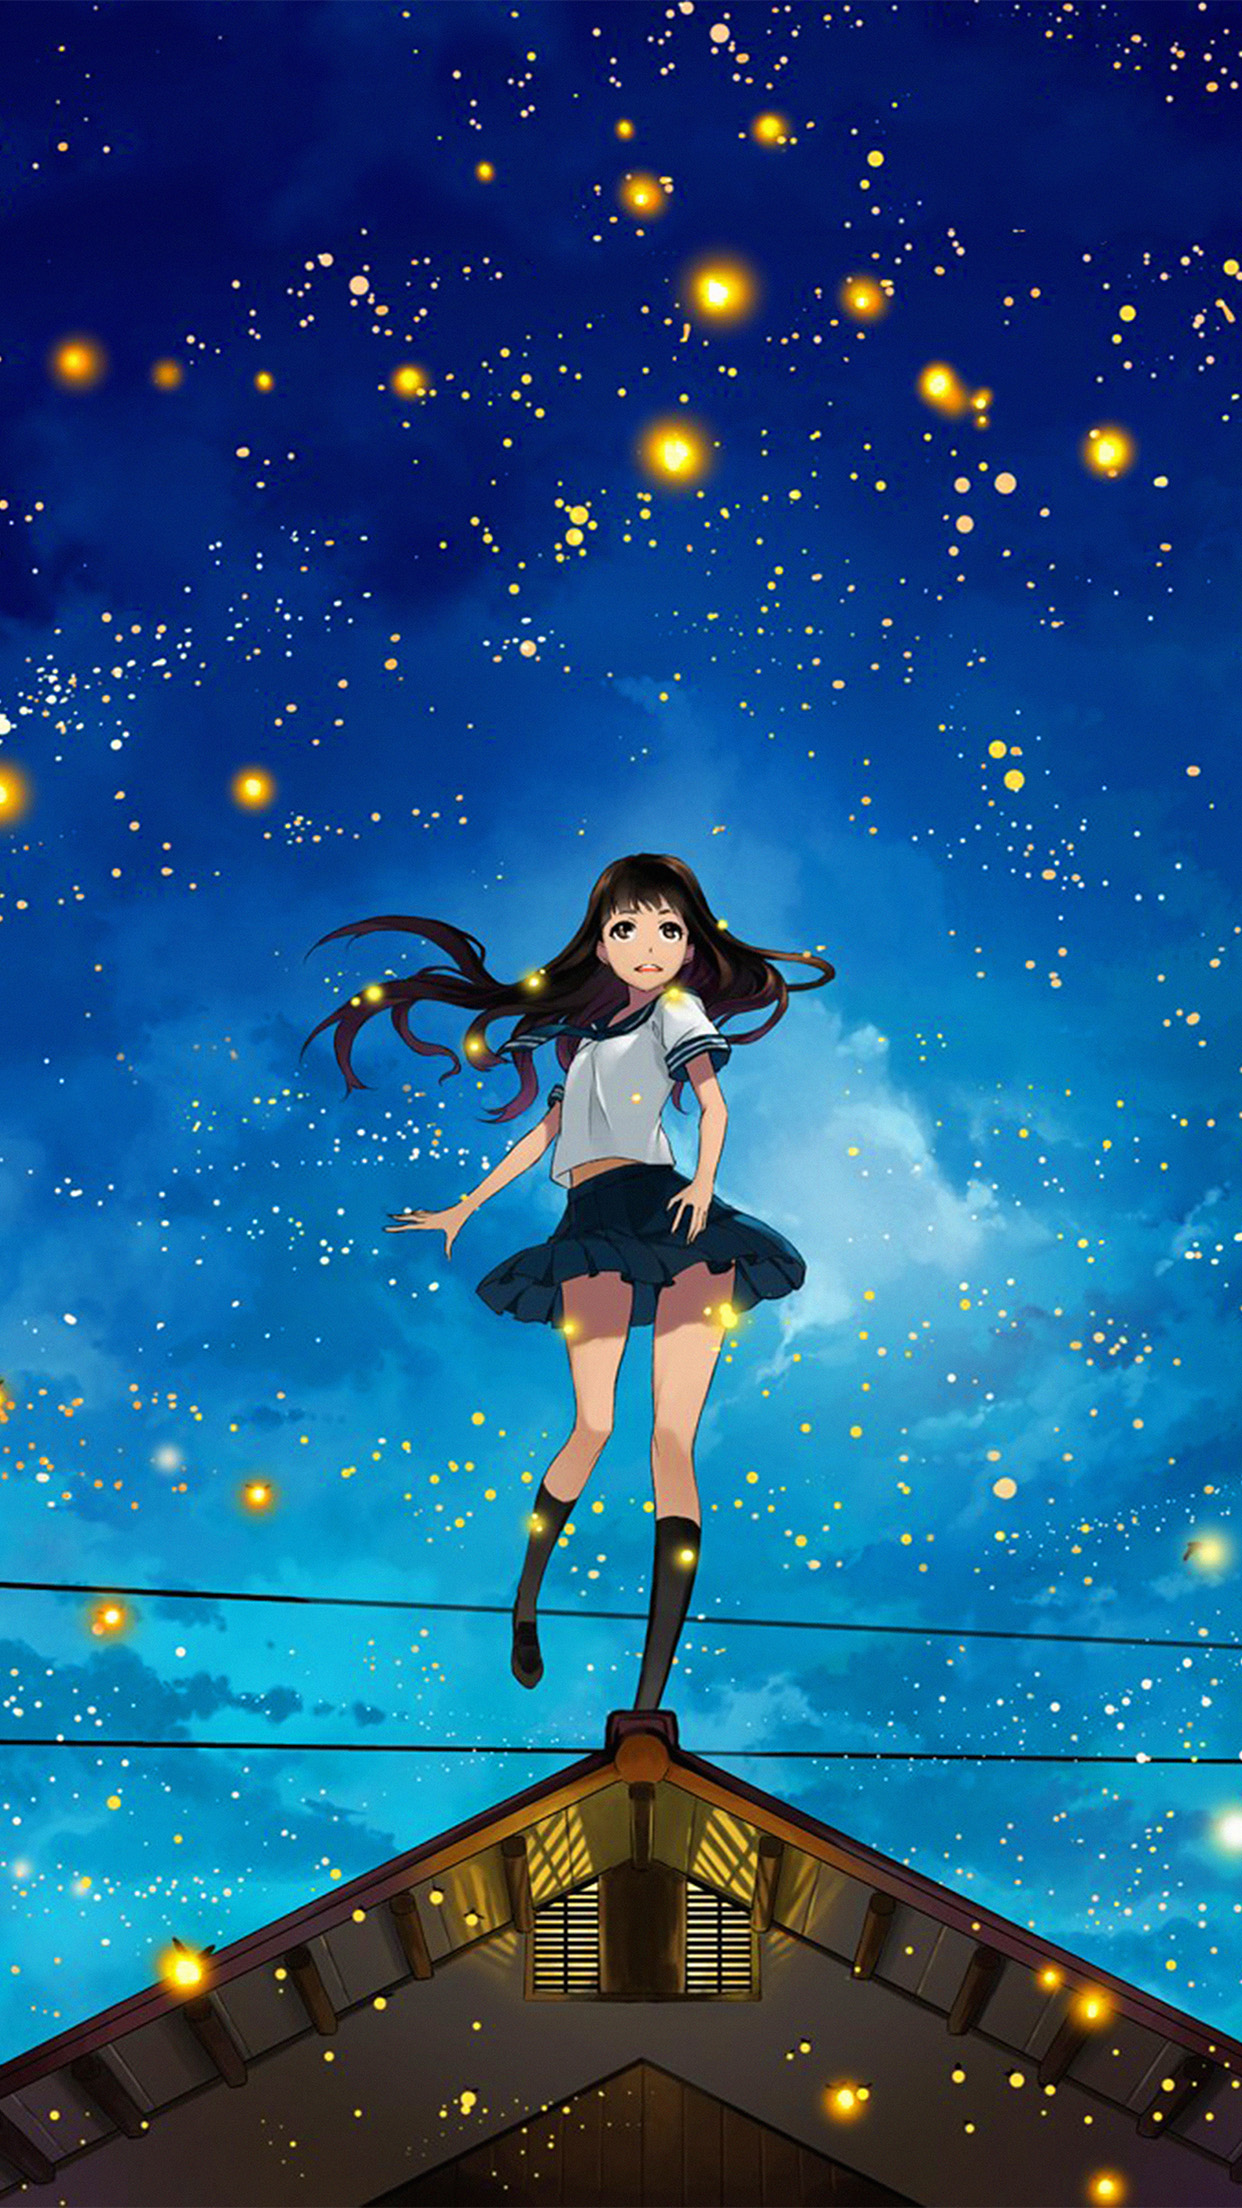 i love papers | au46-girl-anime-star-space-night-illustration-art